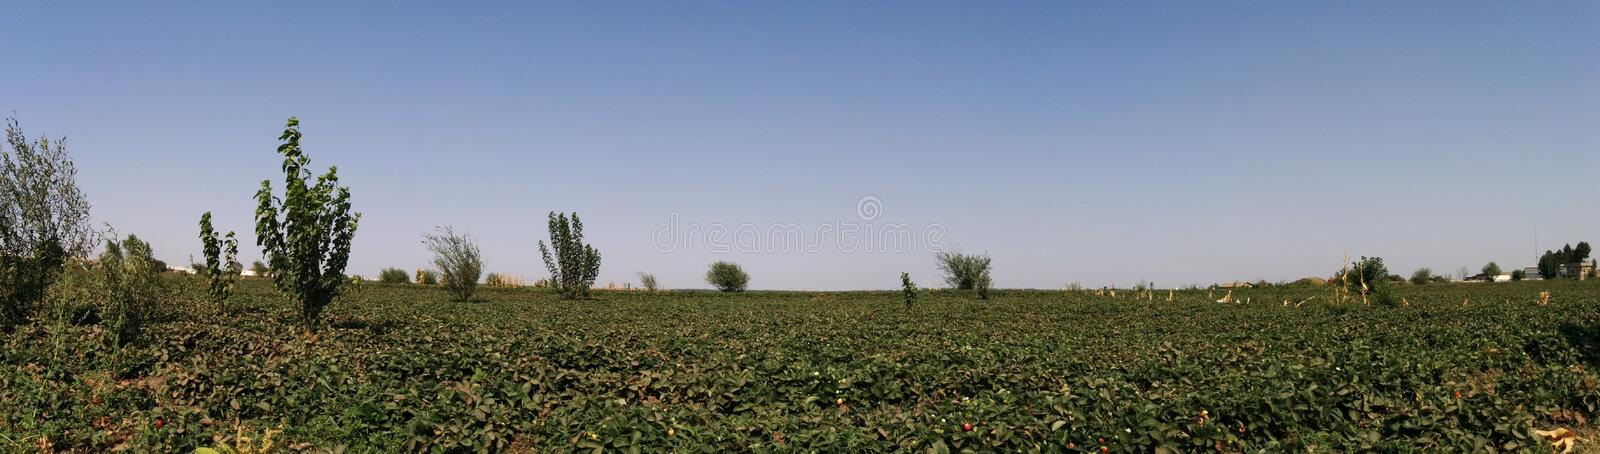 Download Strawberry plants stock image. Image of close, color - 43809569